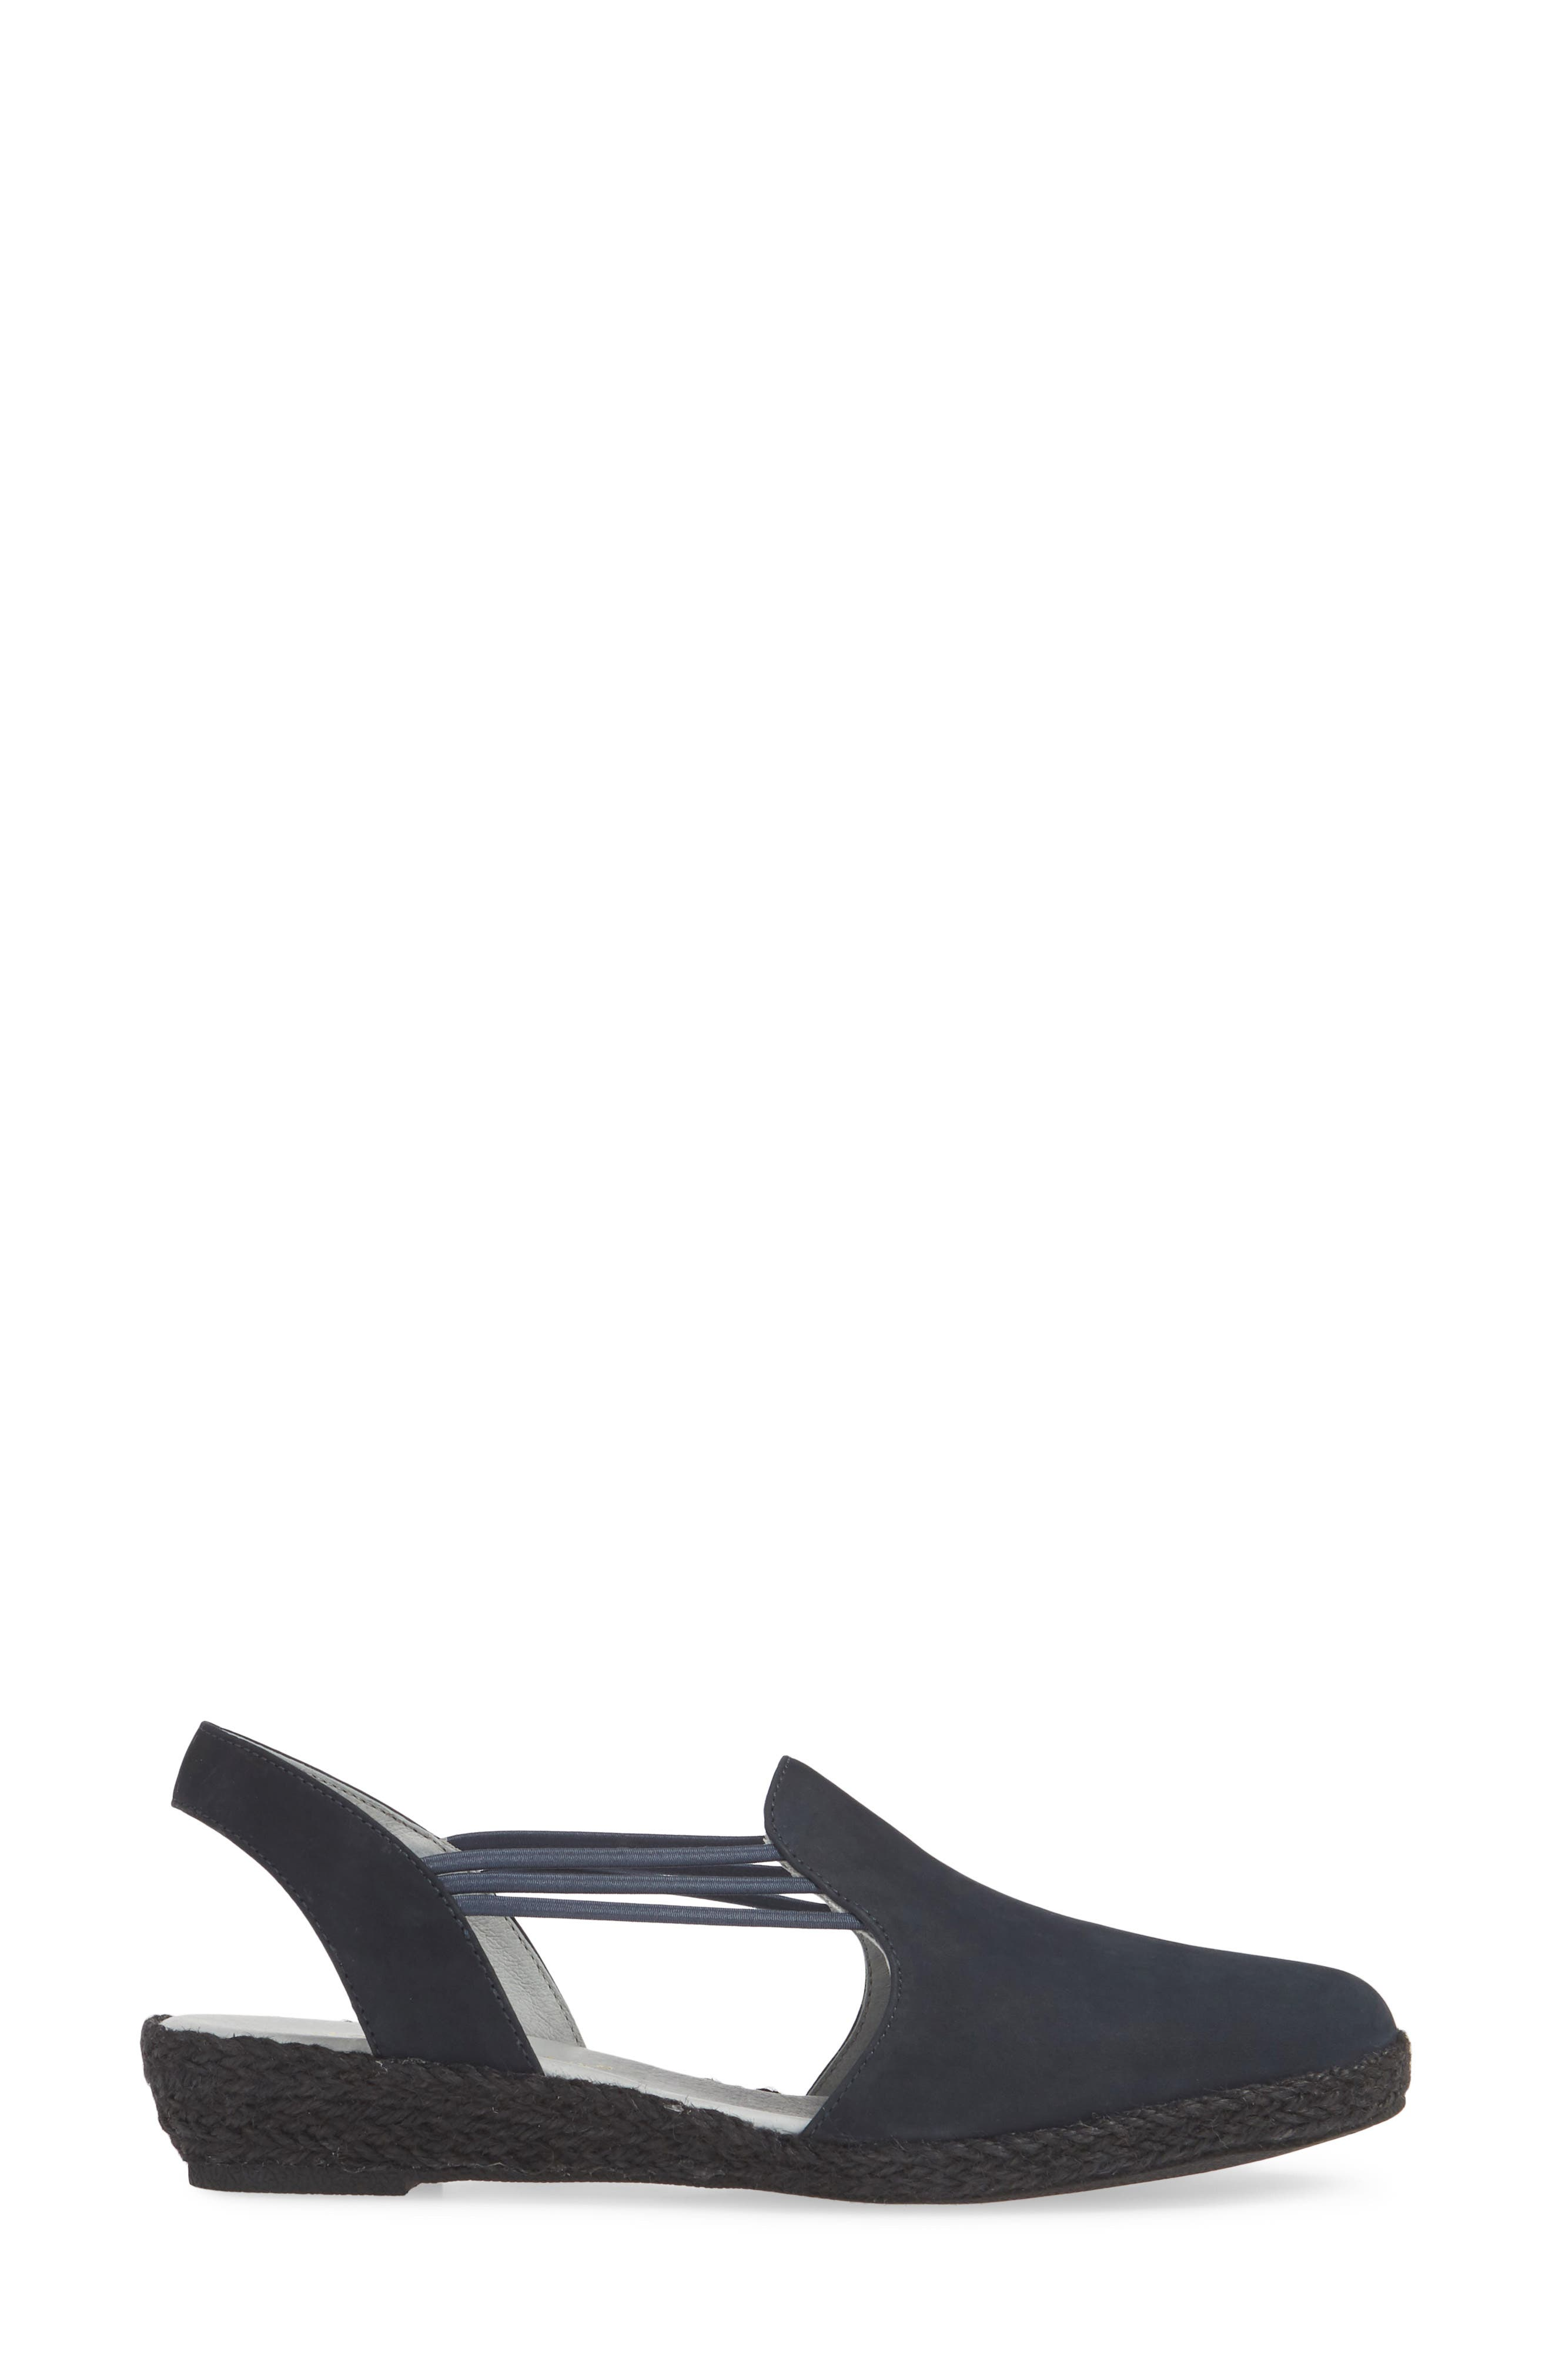 DAVID TATE,                             'Nelly' Slingback Wedge Sandal,                             Alternate thumbnail 3, color,                             NAVY NUBUCK LEATHER